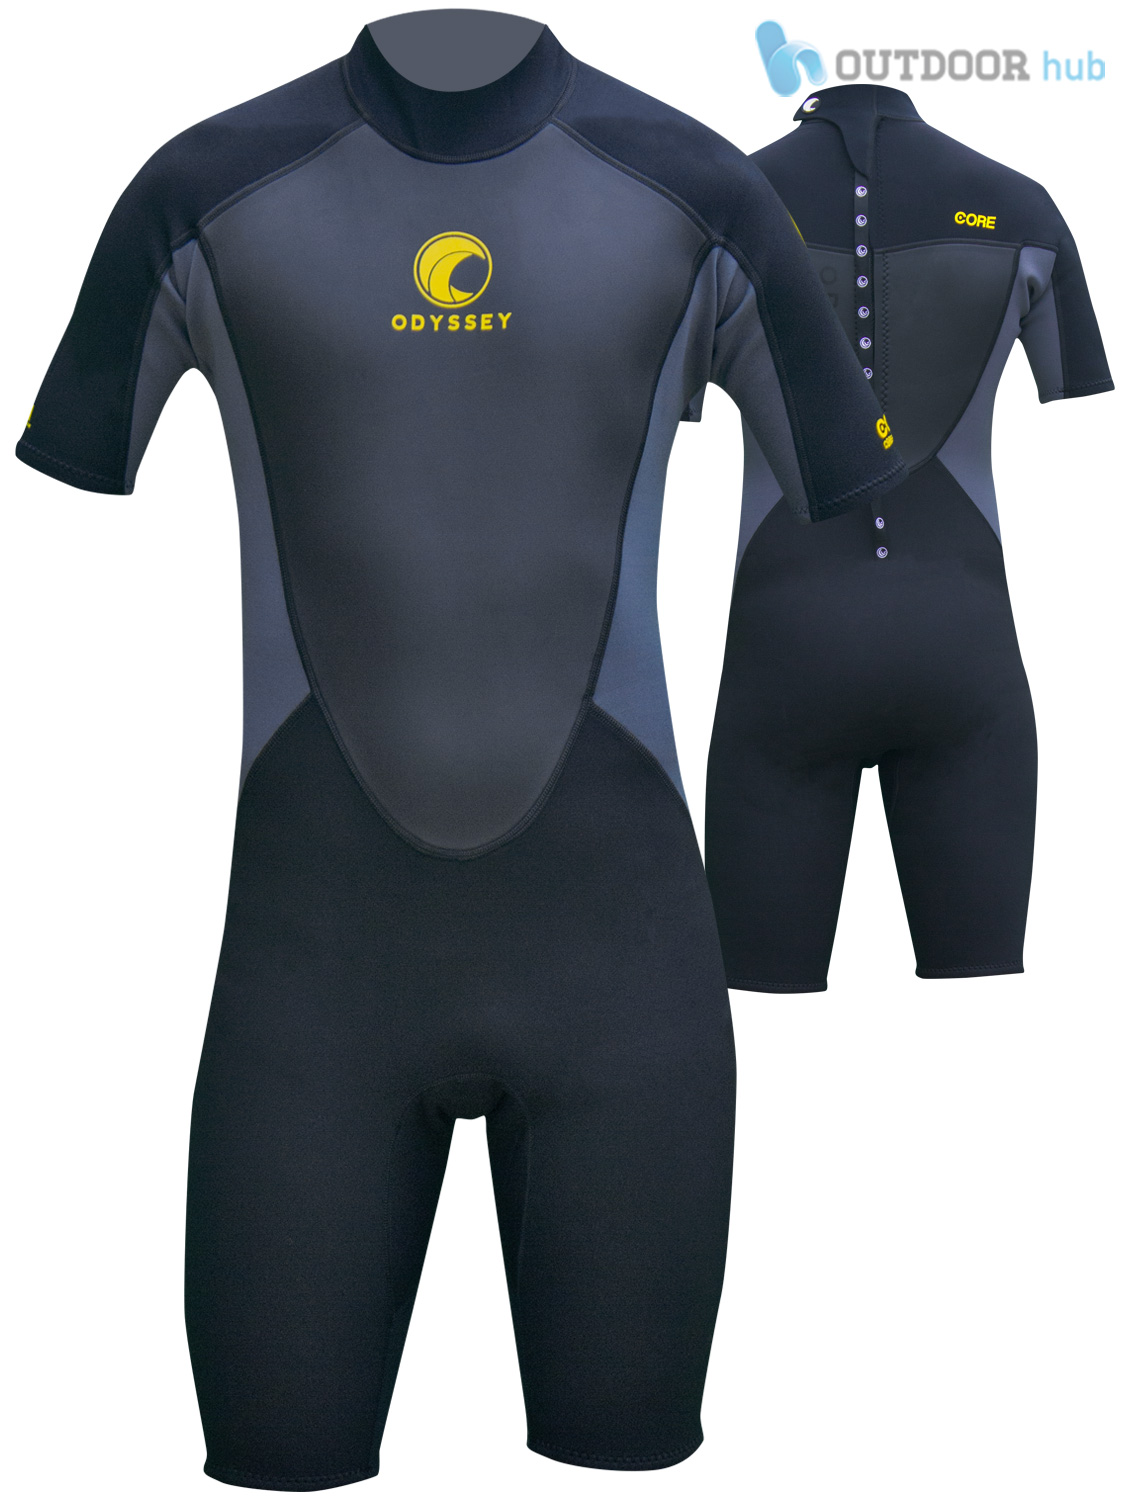 Odyssey Core 2mm 3 / 2mm Core Combinaison Surf Shorty Homme Nager Wetsuit Kayak S-XXL dded08